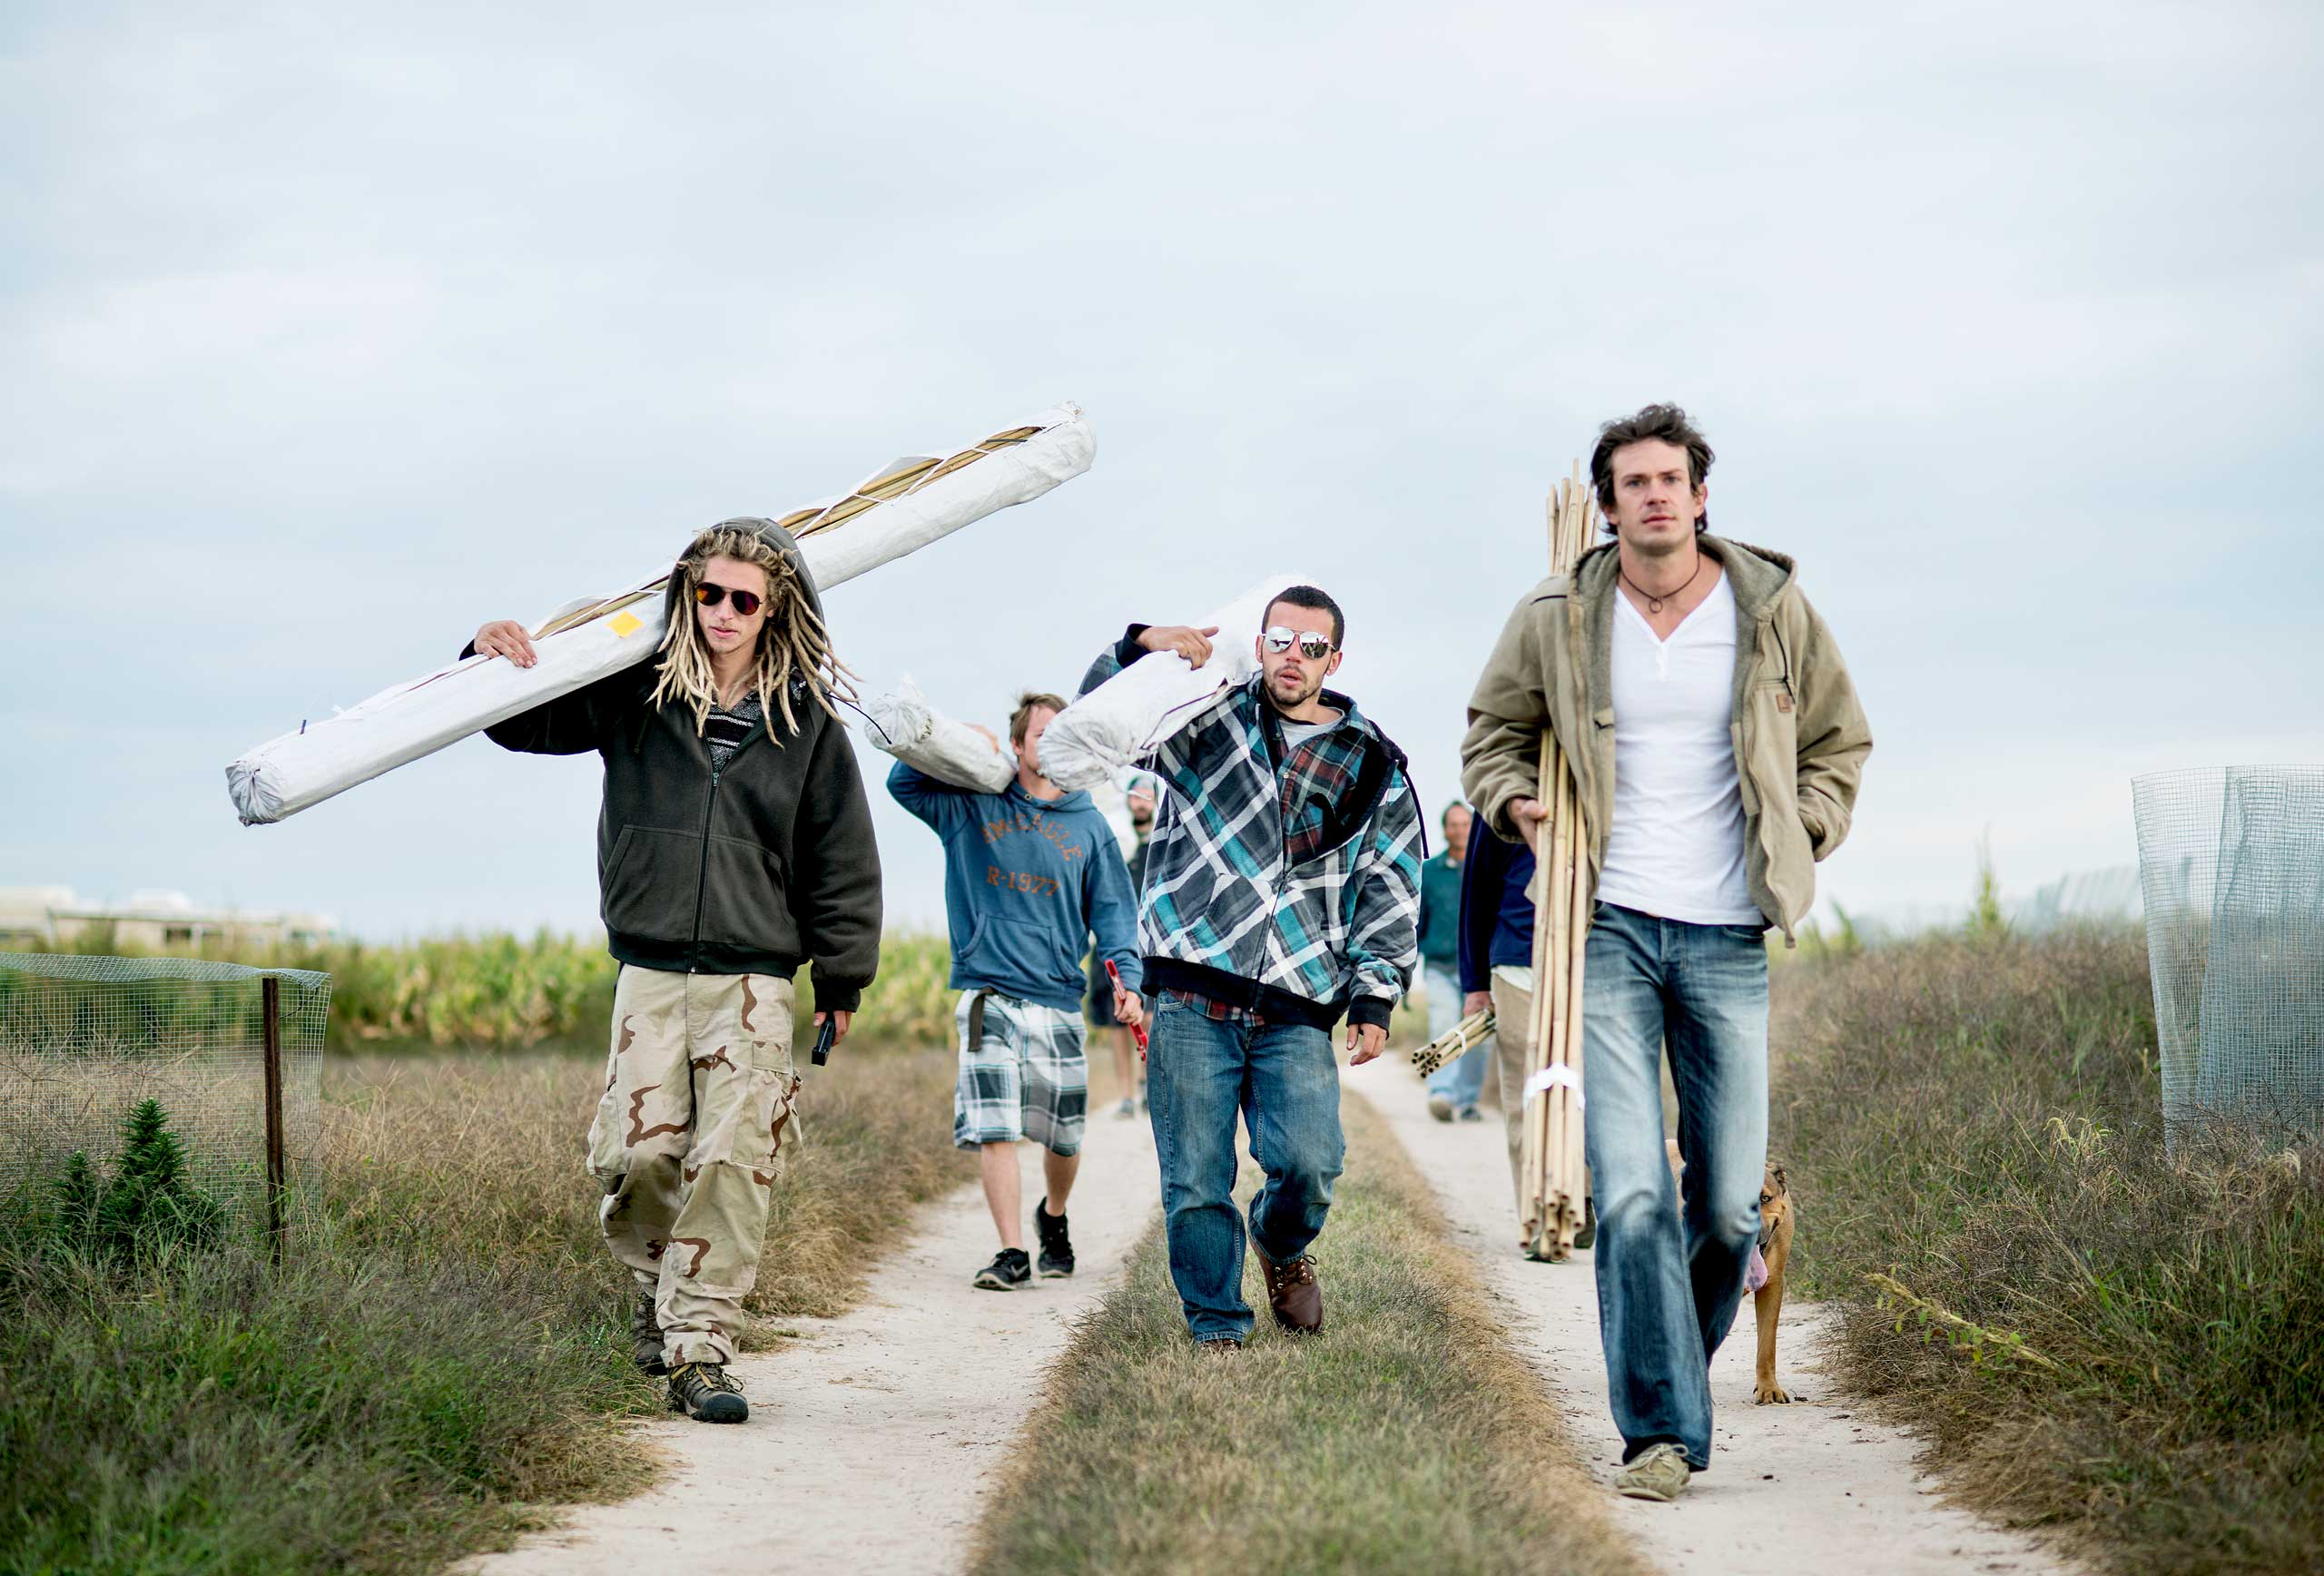 From left: Zachary Sobol, Michael Atchley, and Jared Stanley walk to the farm to prepare for harvest of Charlotte's Web near Wray, Colo. on Sept. 22, 2014.